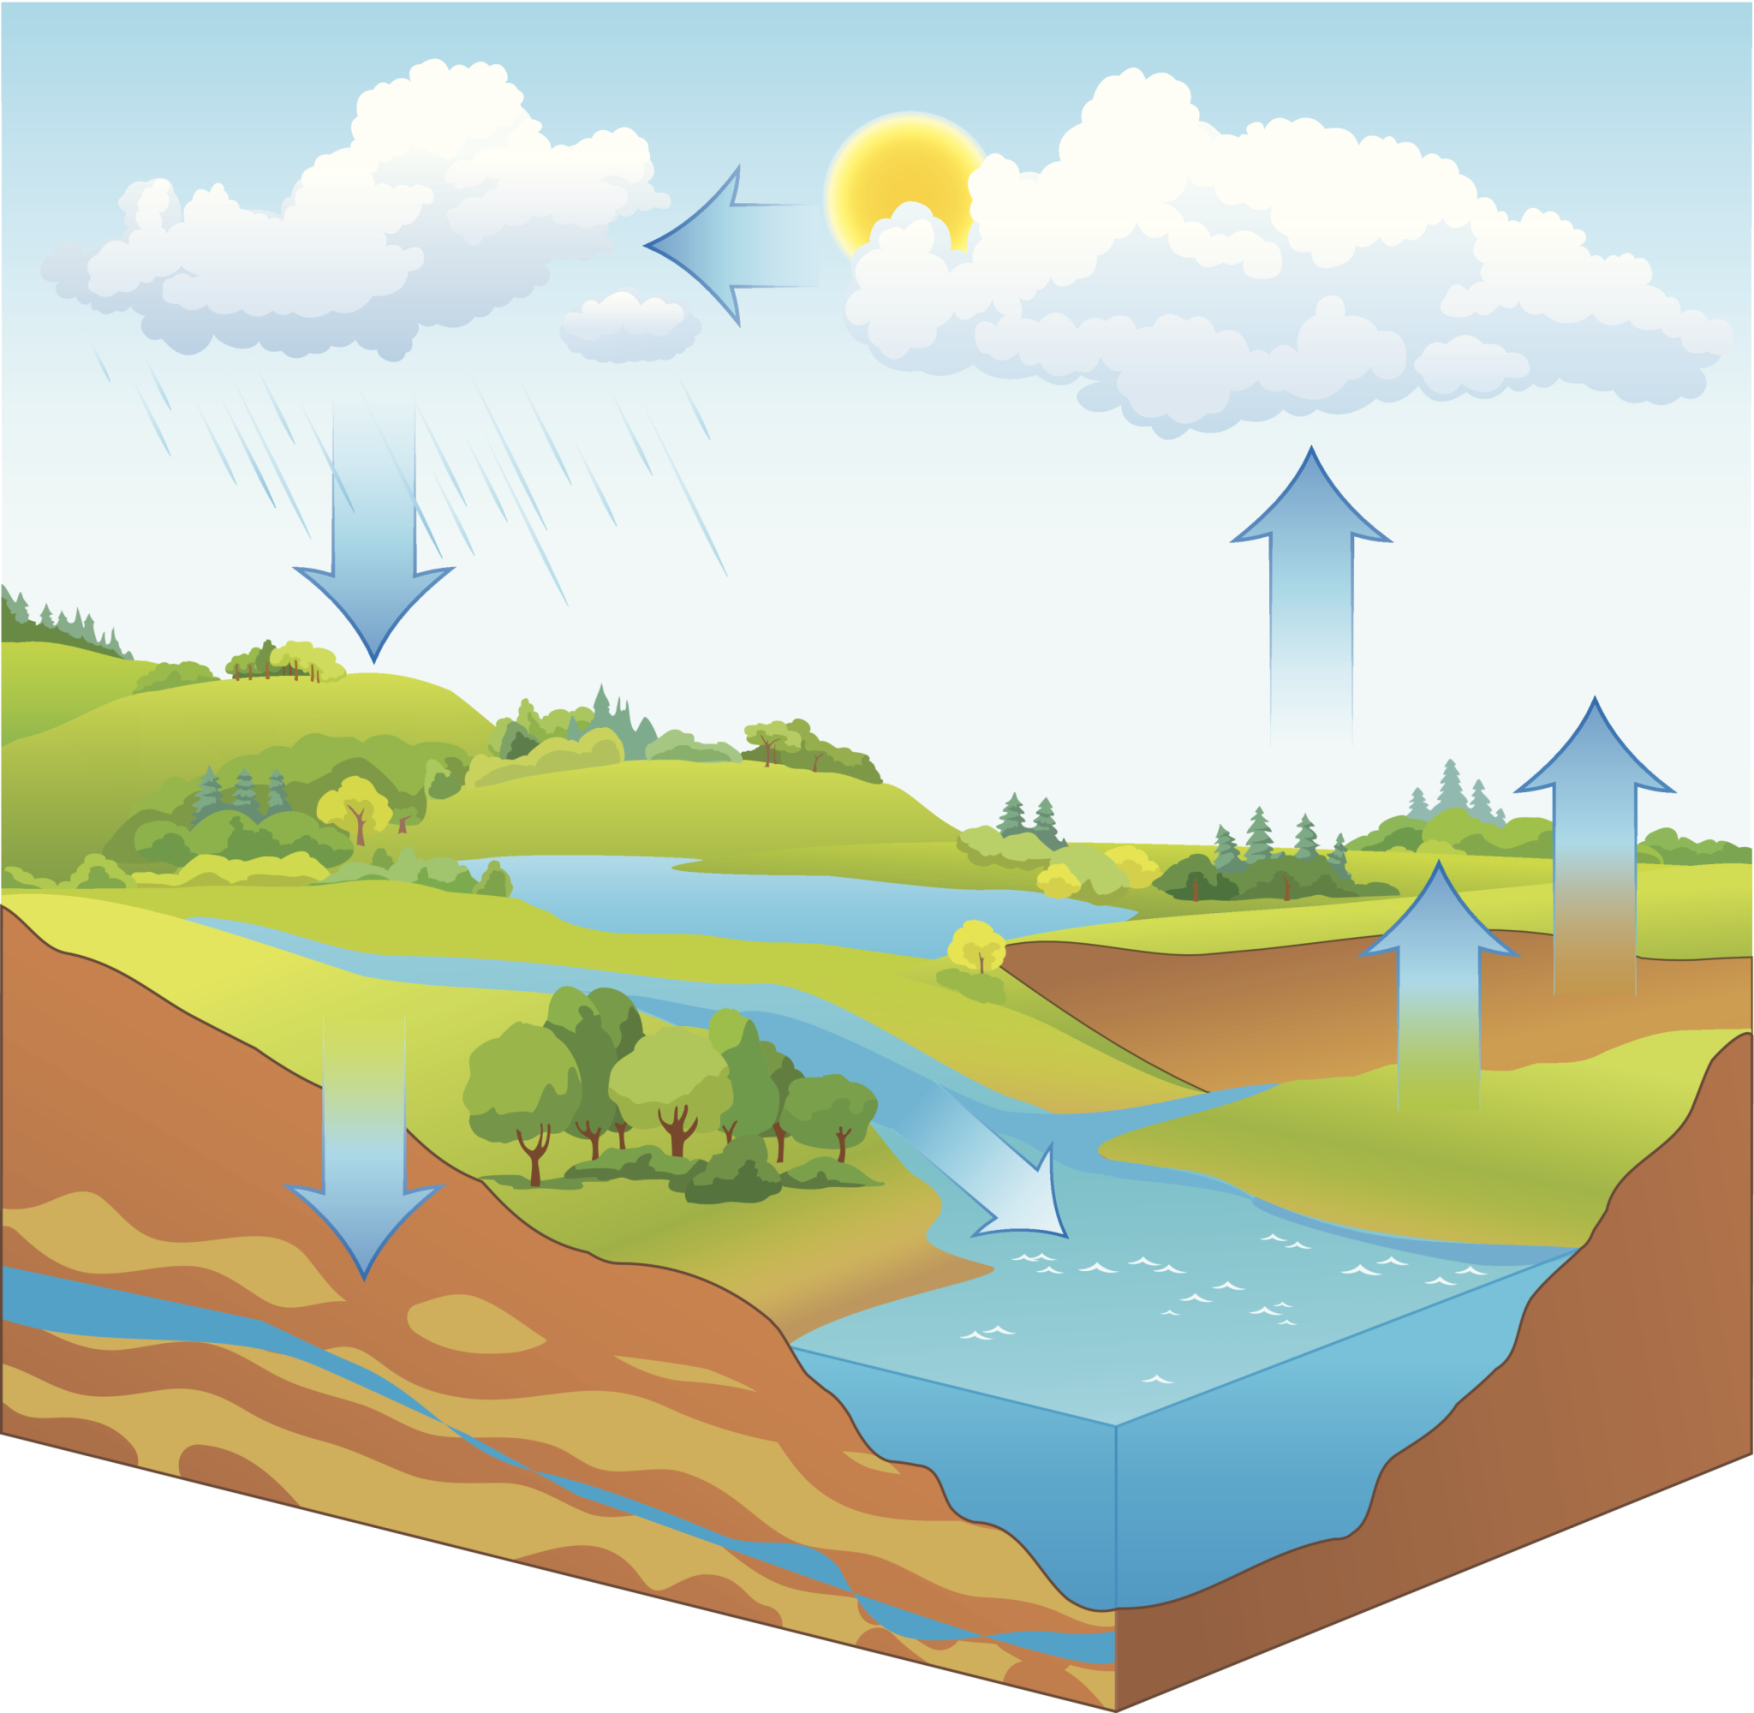 drought challenged farmers collaborate to sustain local groundwater